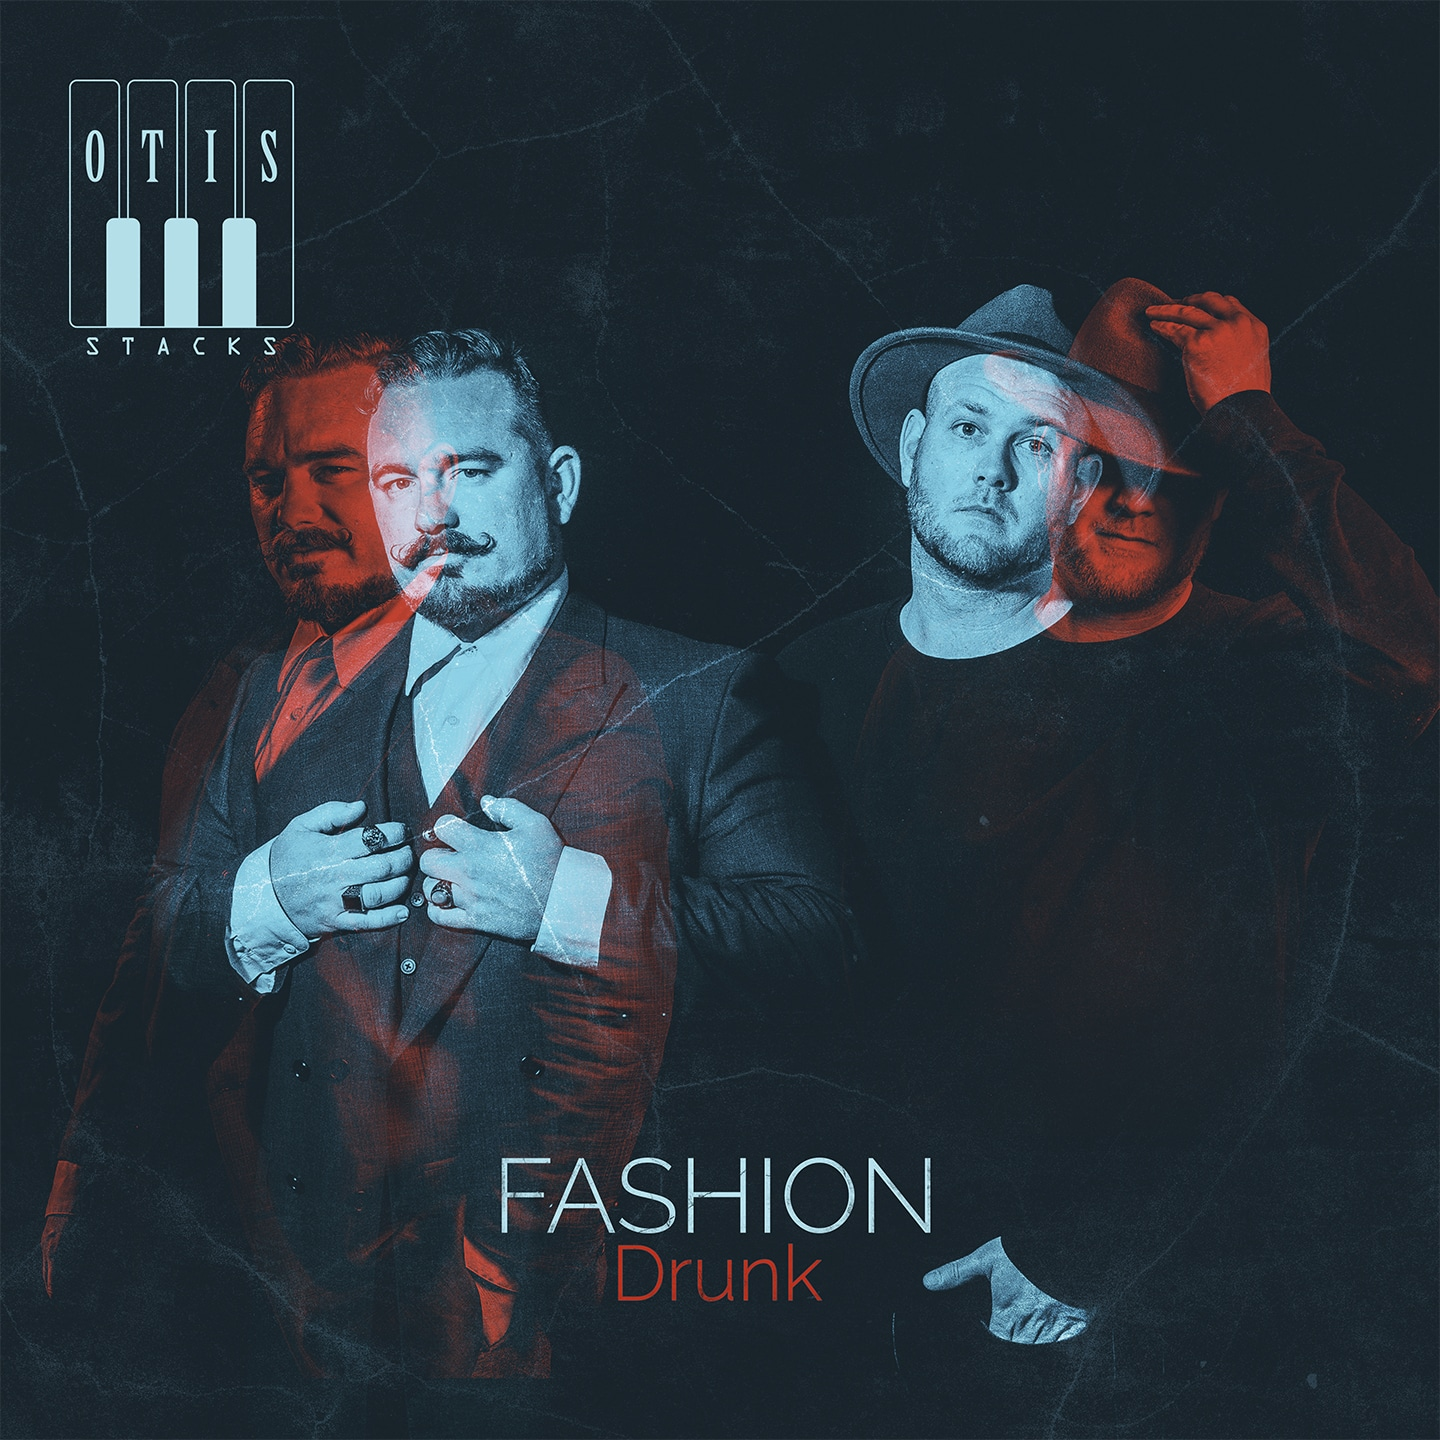 Pochette vinyle Fashion Drunk Otis Stacks